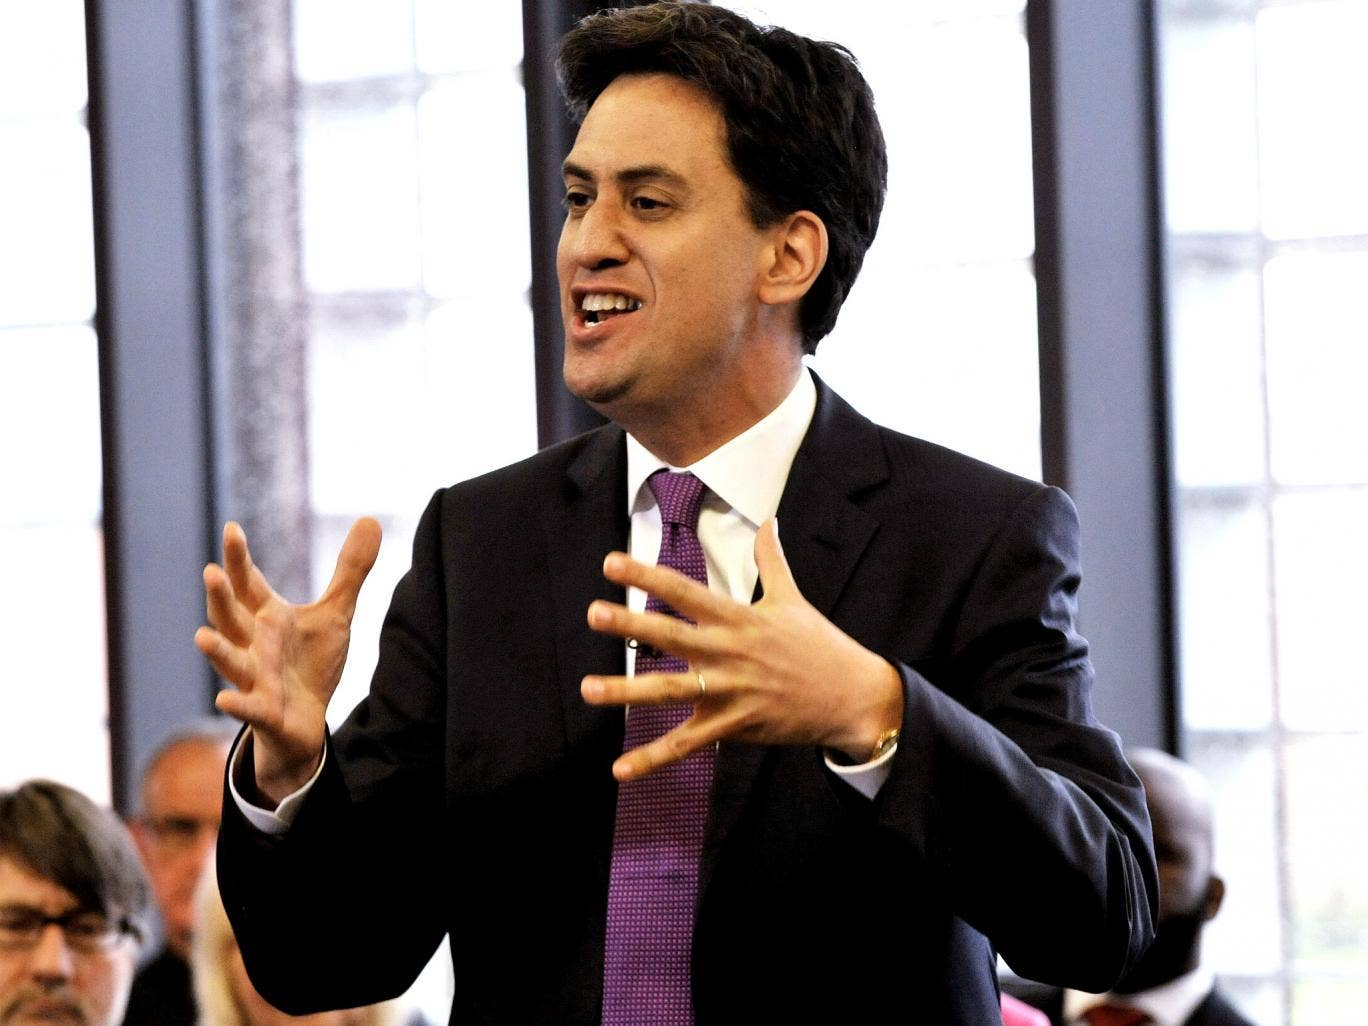 Labour leader Ed Miliband says his party need to talk about immigration 'in a postivie way'